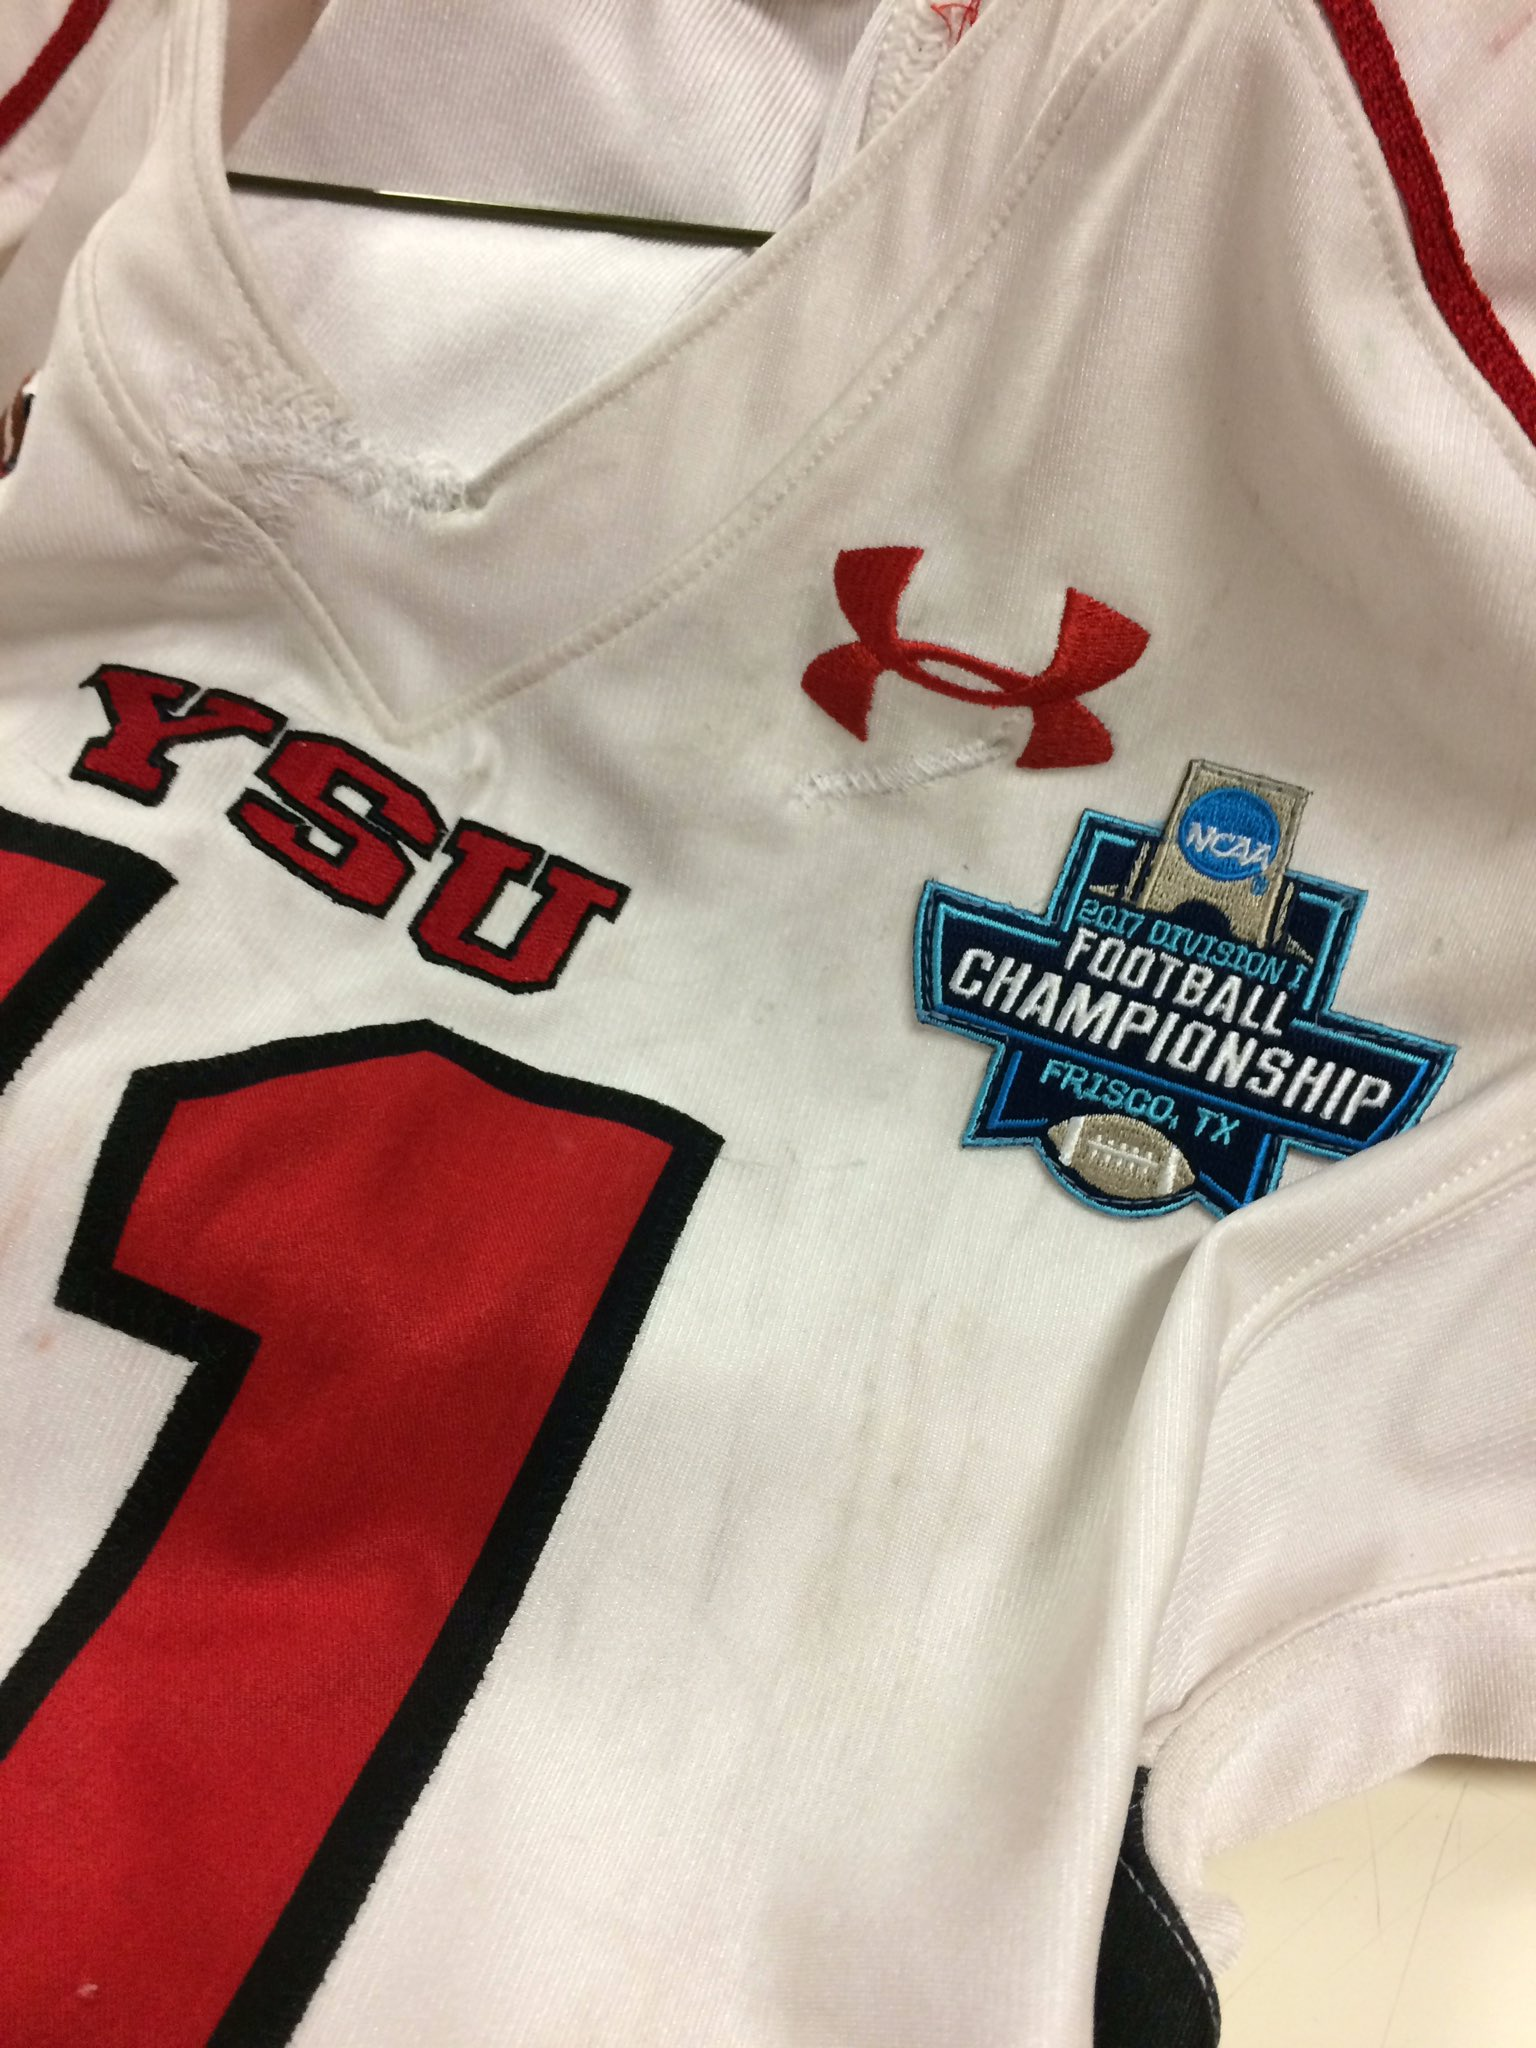 Here's Youngstown State's Patch For The Fcs Championship Game